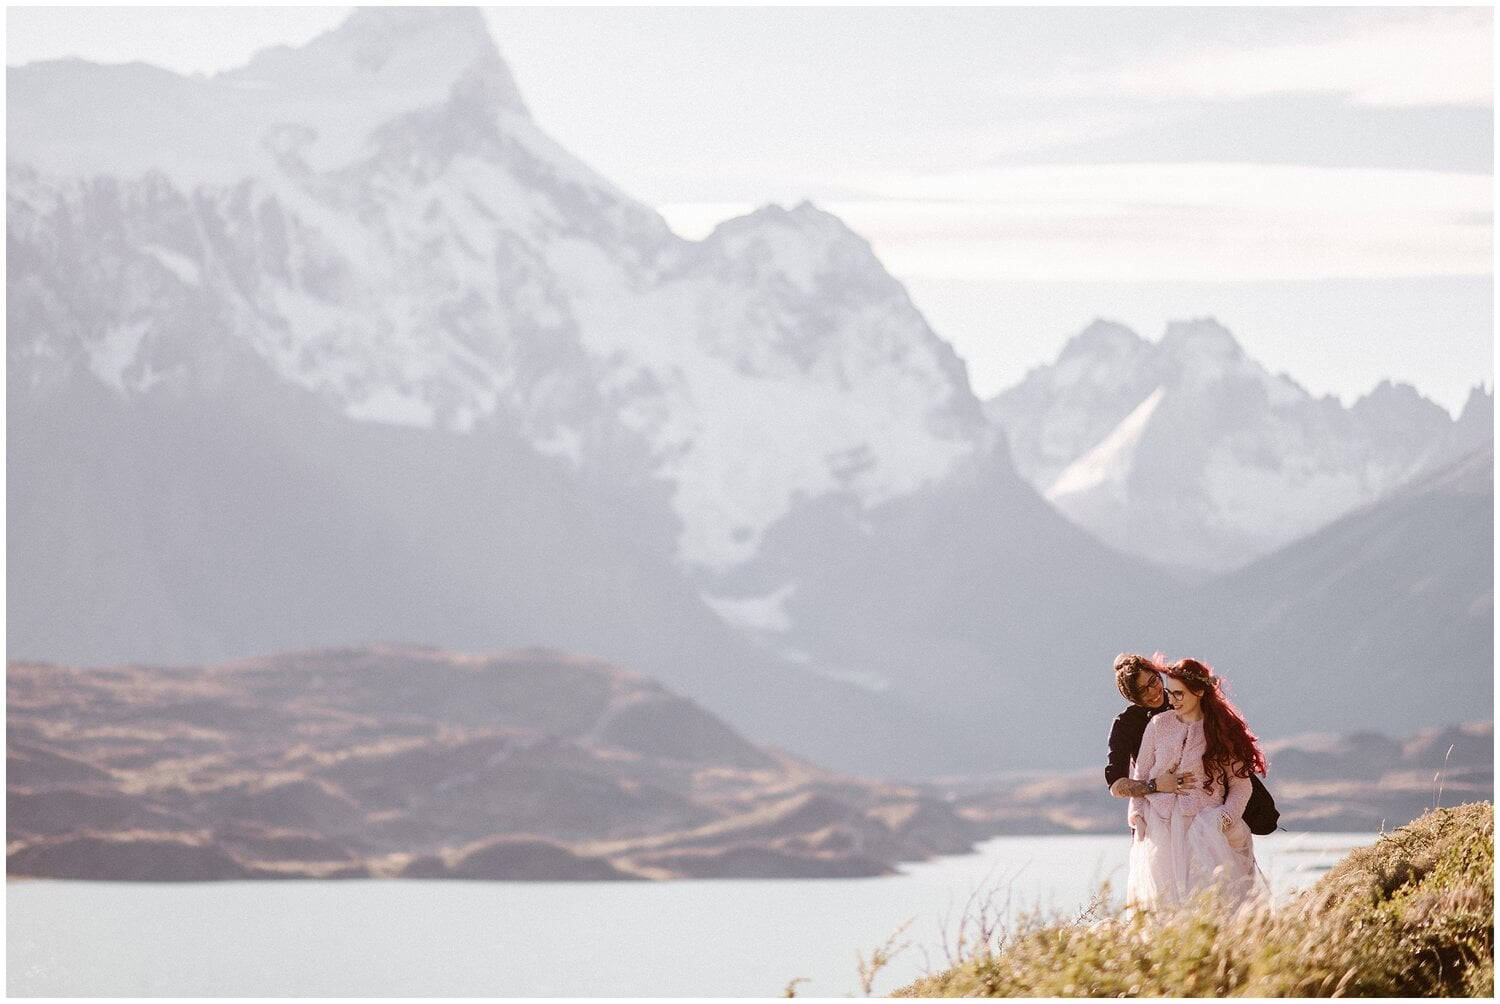 Couple embraces on their wedding day in Patagonia.